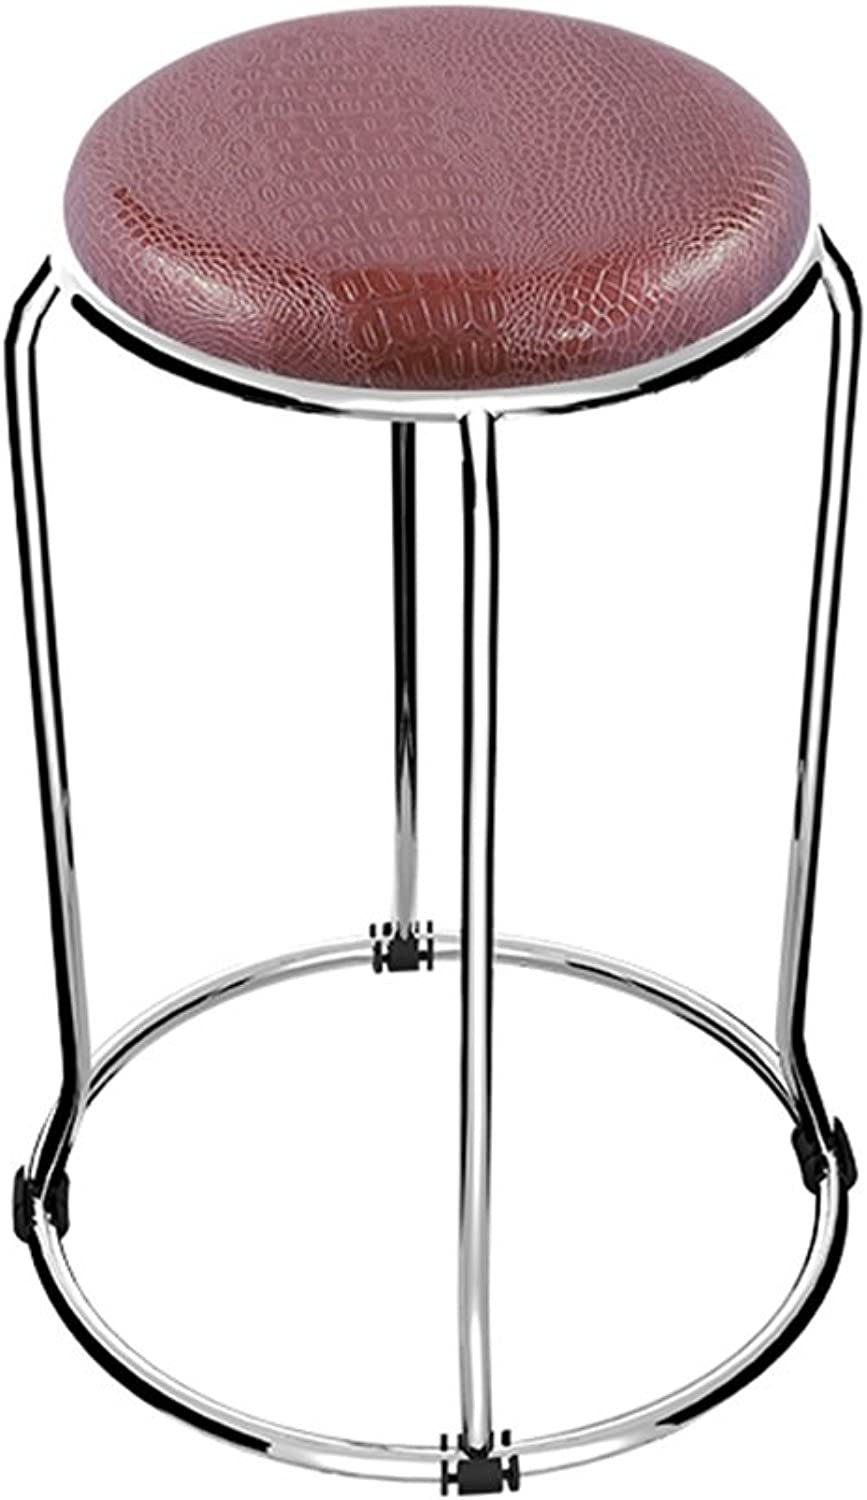 Fashion Stainless Steel Small Round Stool Soft Leather Chair Table High Stool (Wine Red D37cmH47cm)